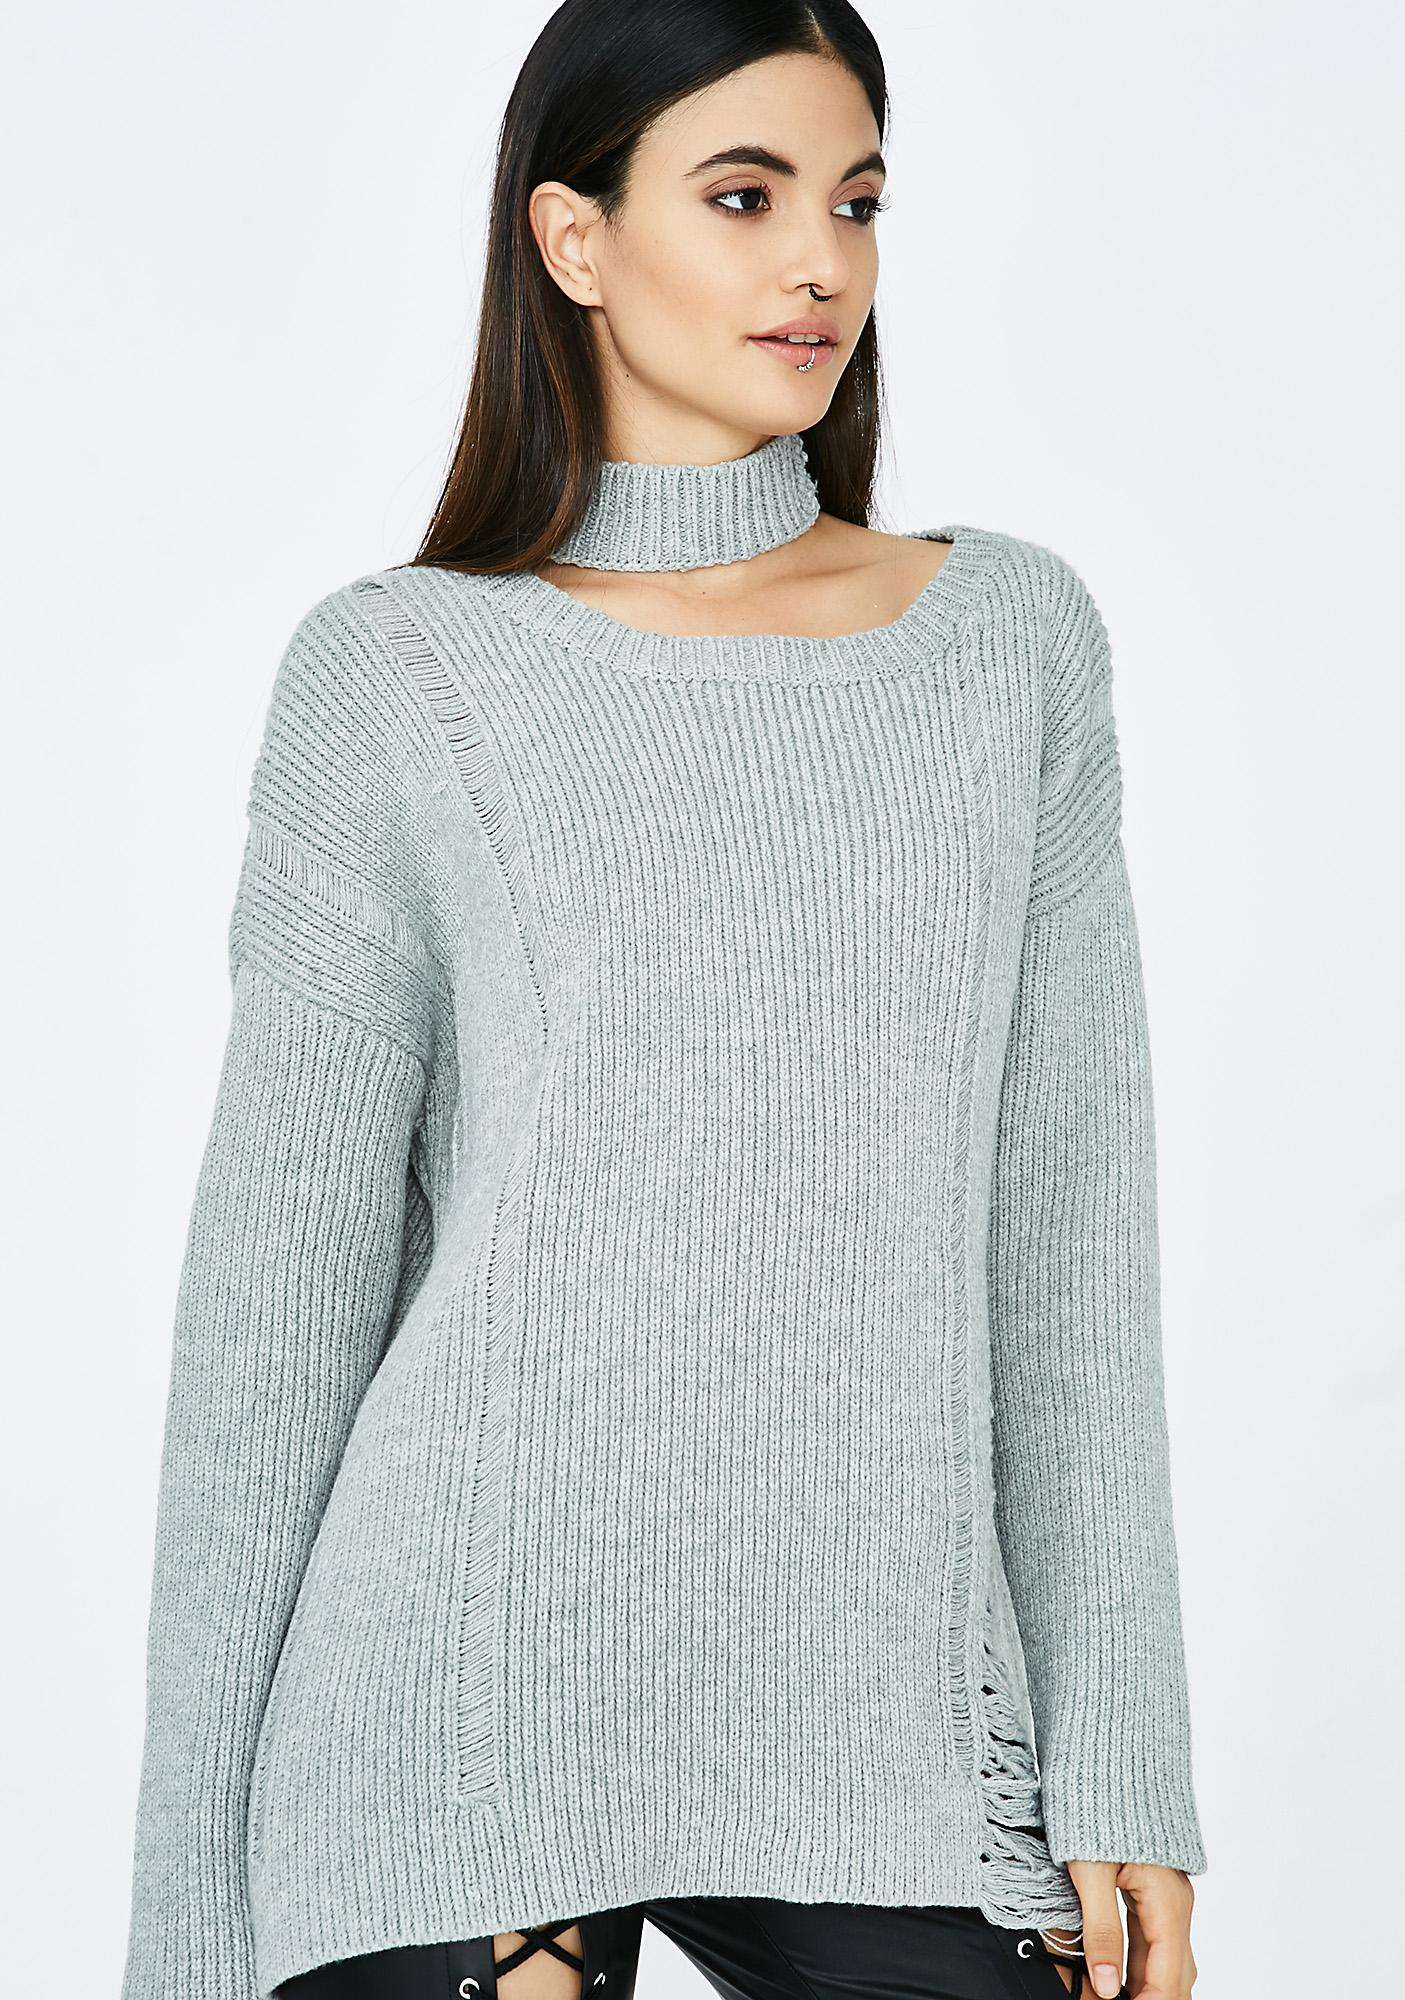 Take Me Home Knit Sweater